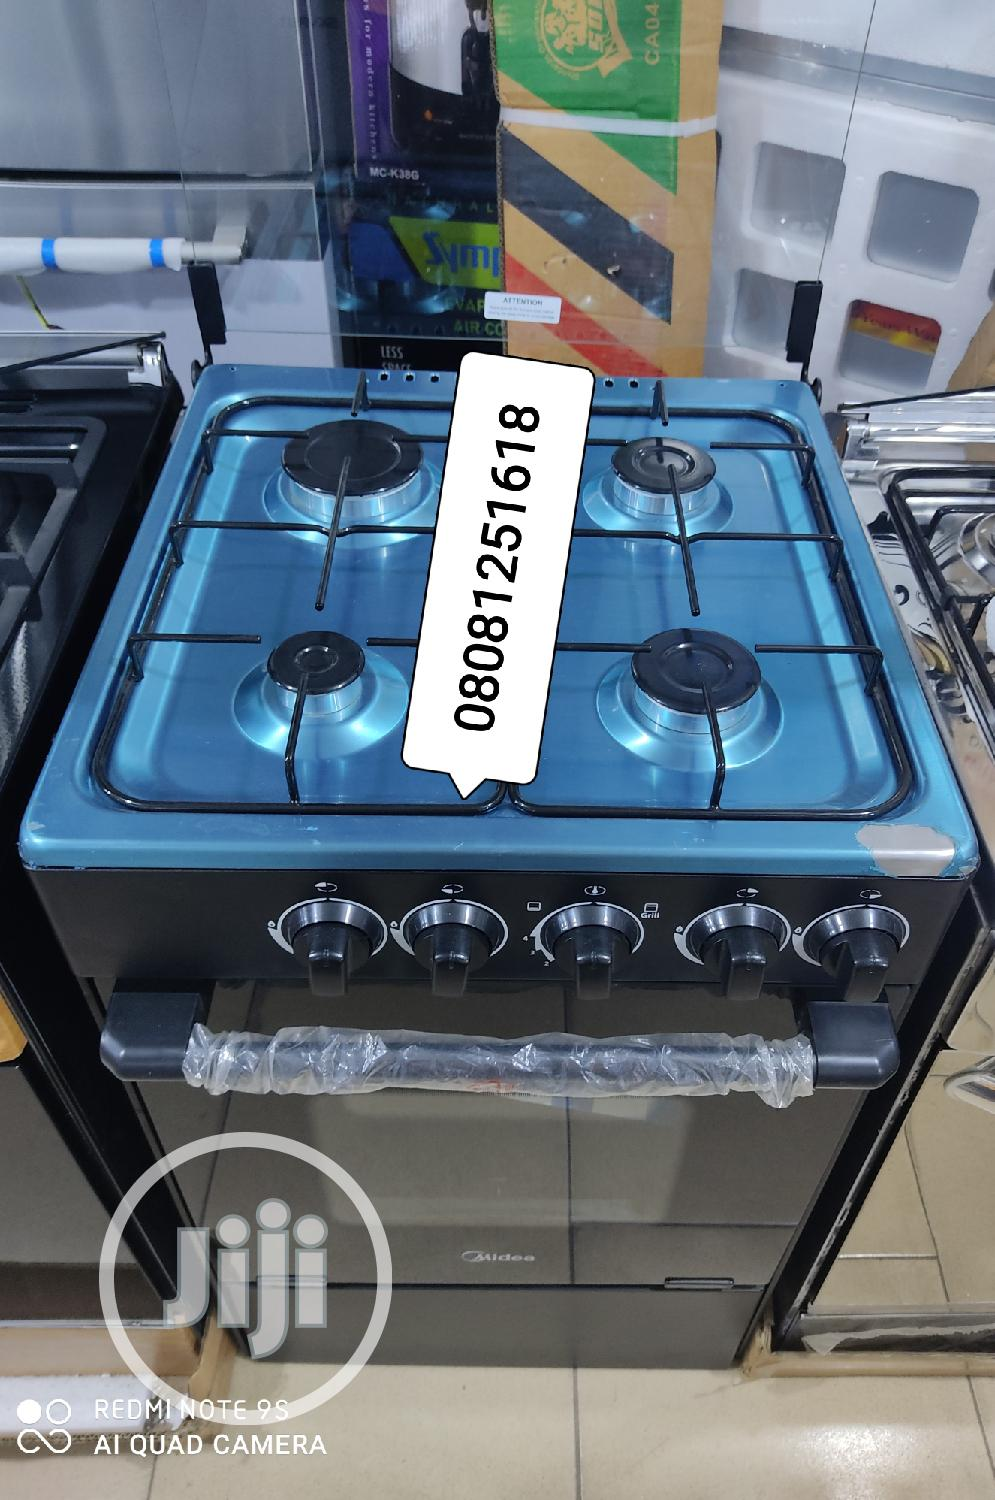 Archive: Midea Four Gas Cooker Burner With Oven Anti -Rust Iron